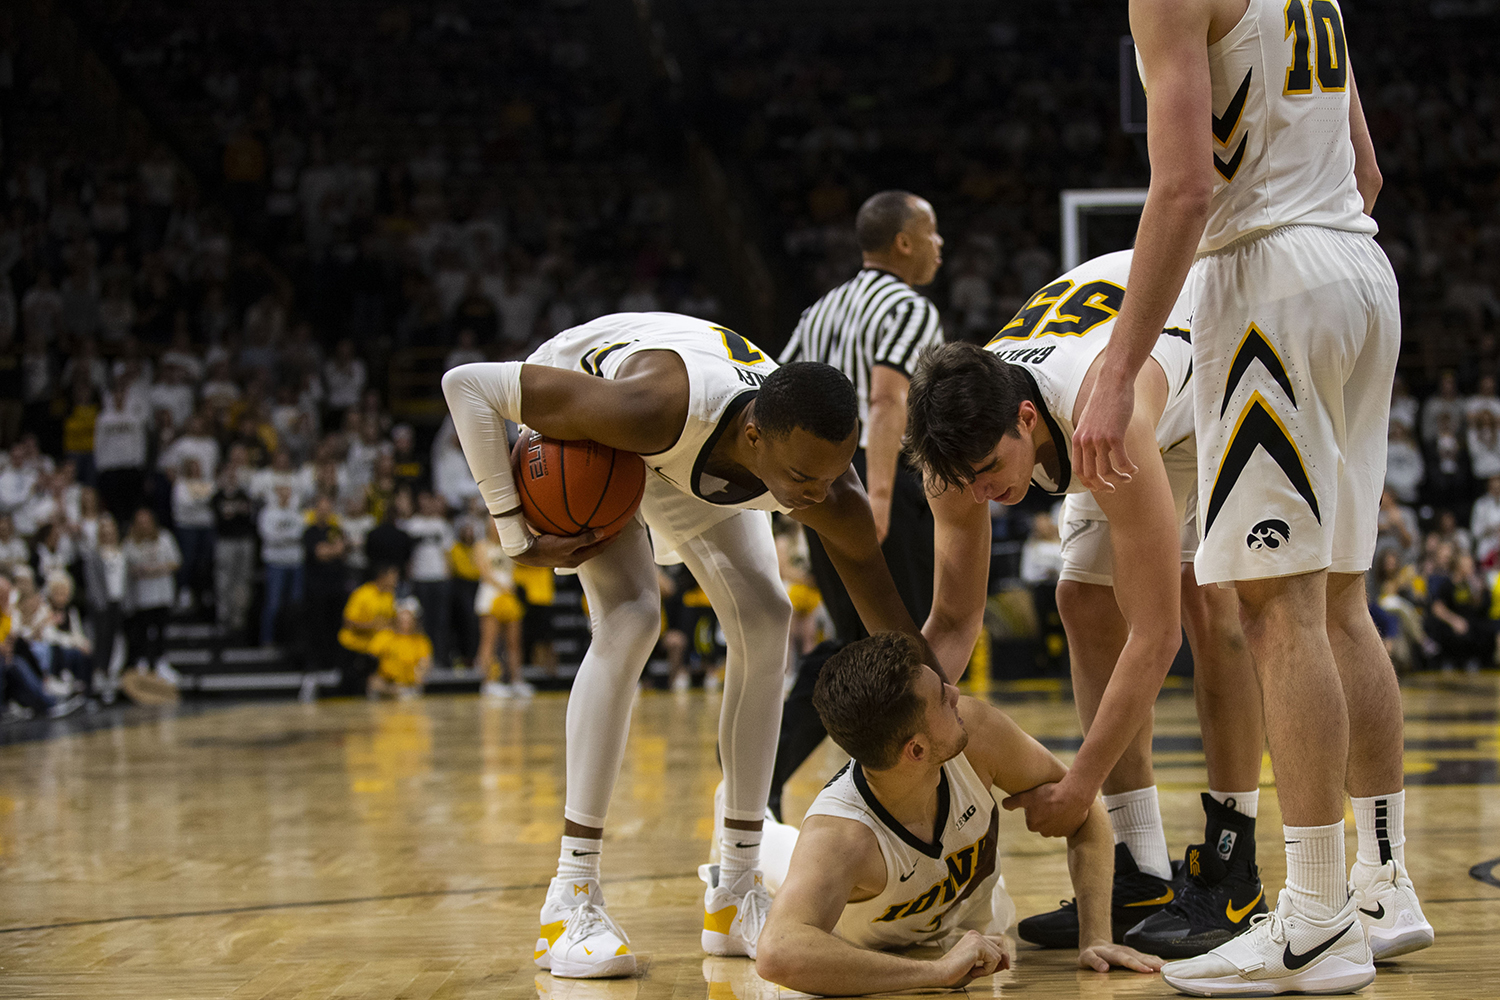 Iowa+guard+Jordan+Bohannon+%28bottom%29+is+helped+up+by+teammates+during+the+Iowa%2FIllinois+men%27s+basketball+game+at+Carver-Hawkeye+Arena+on+Sunday%2C+January+20%2C+2019.+The+Hawkeyes+defeated+the+Fighting+Illini%2C+95-71.+